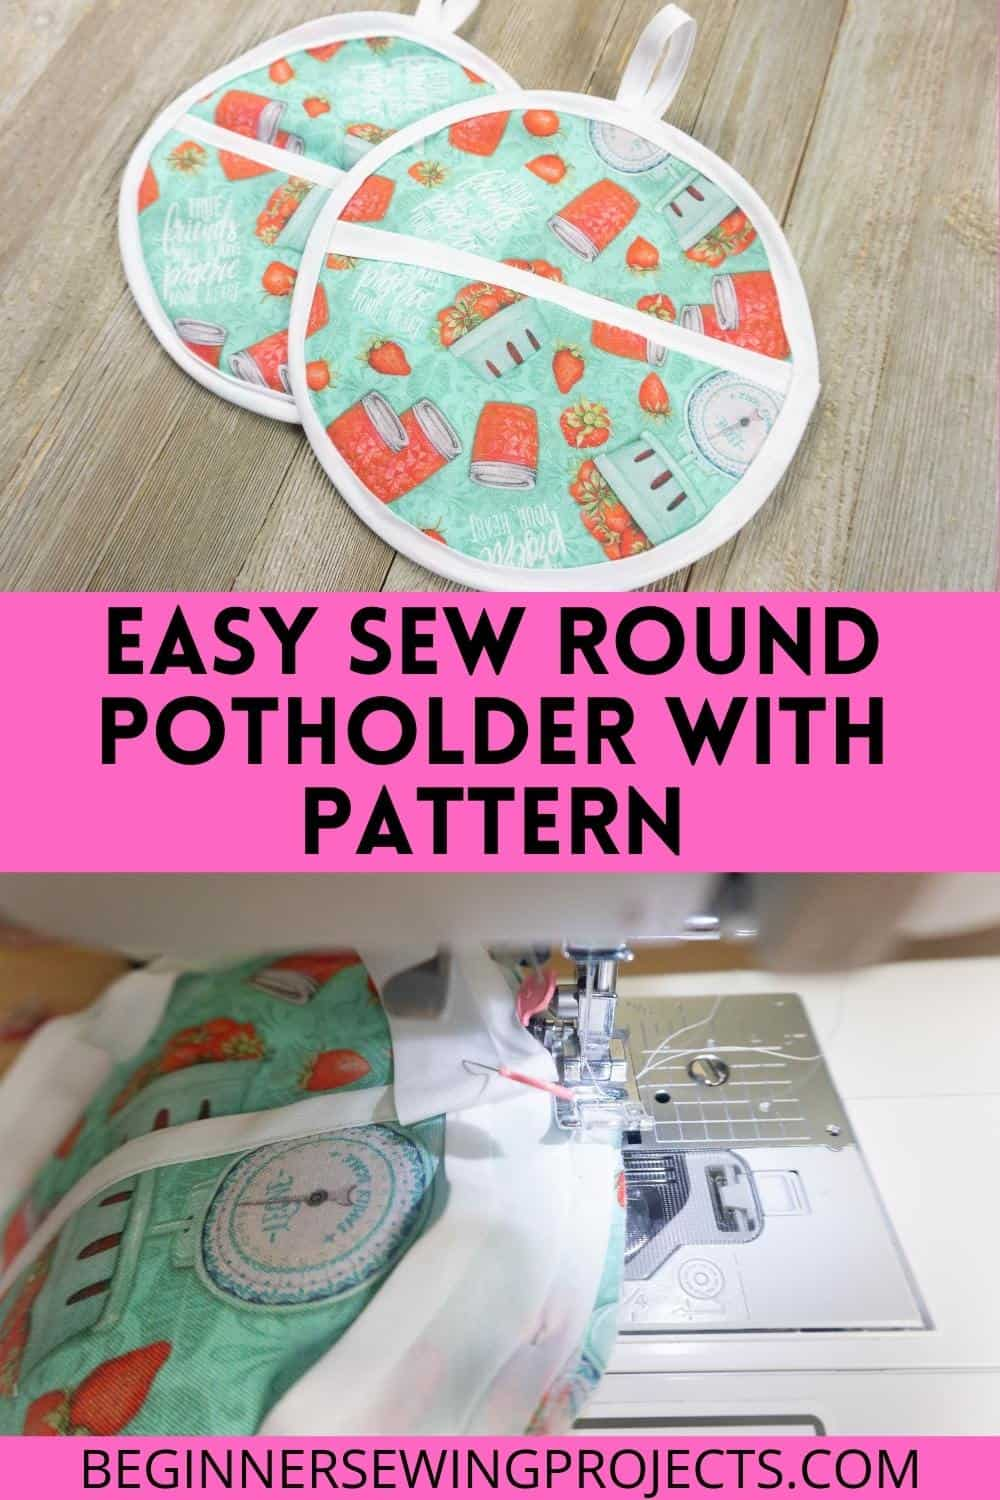 Easy Sew Round Potholder With Pattern